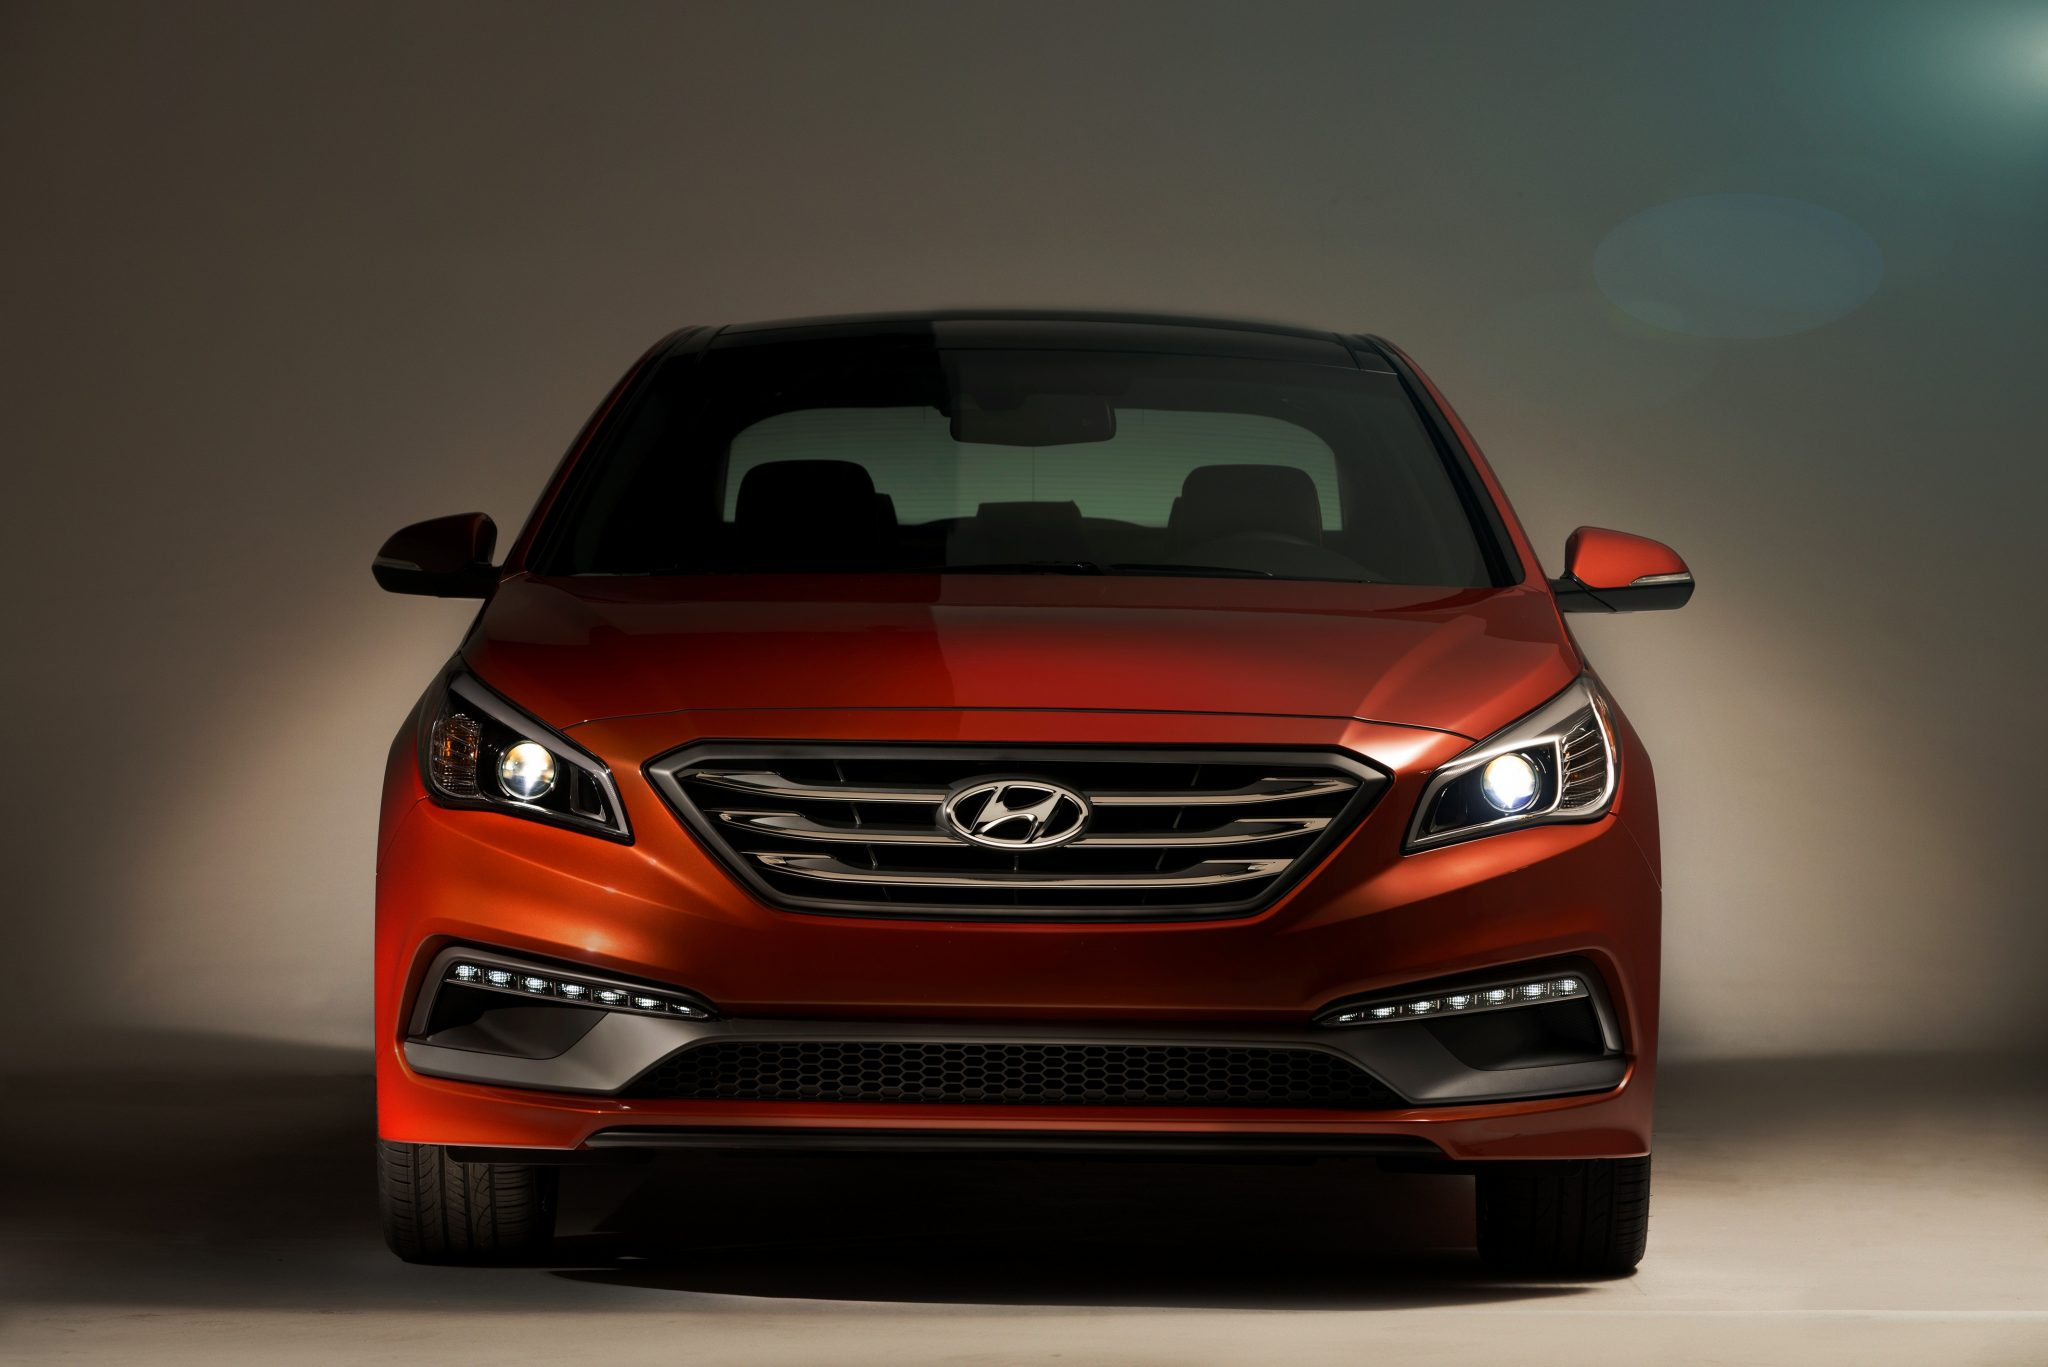 photo clutch new hatch facelift and warm unveiled news gallery with gearbox dual photos hyundai